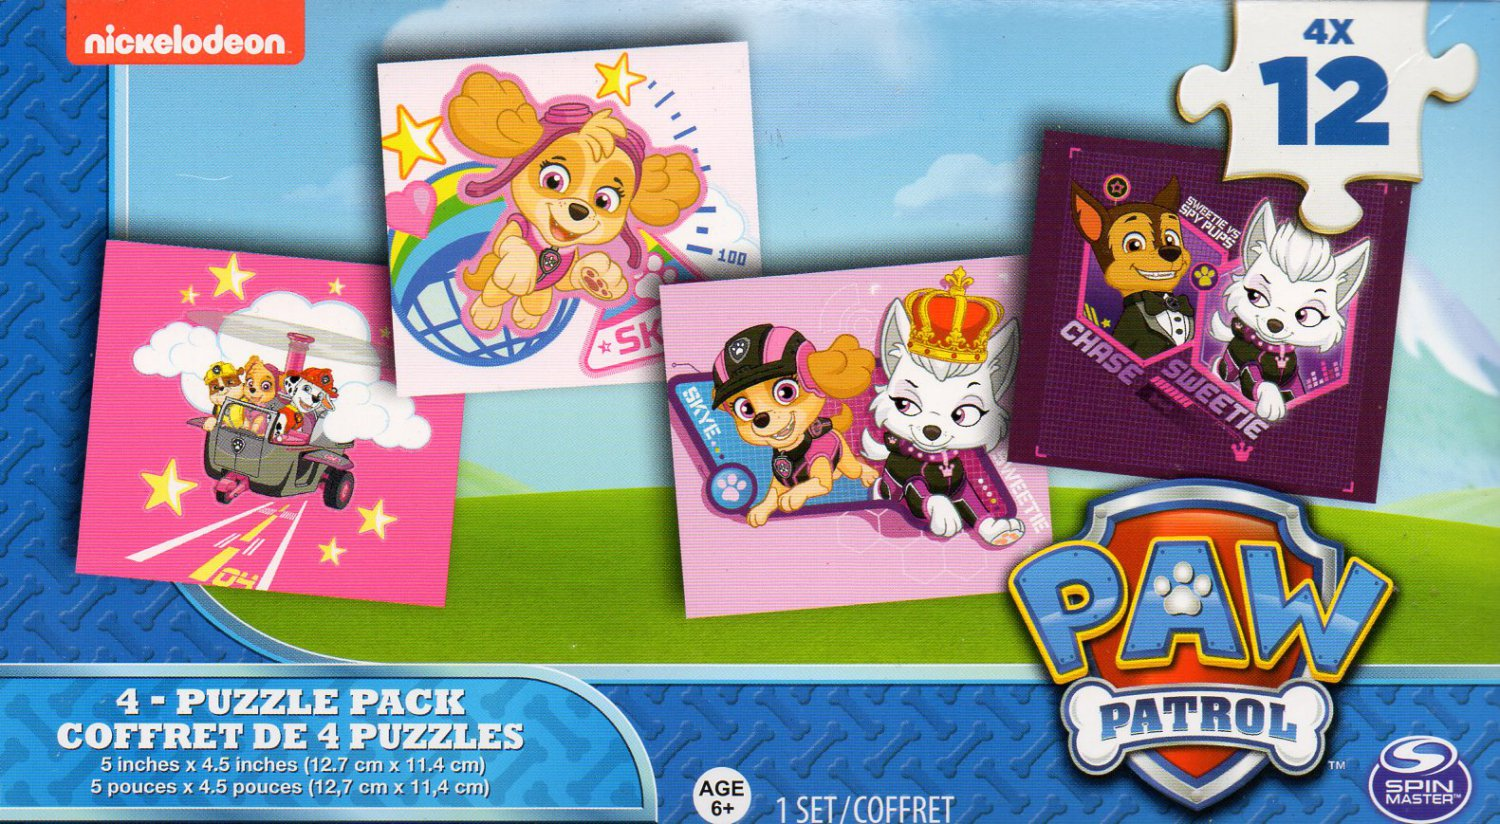 Nickelodeon Paw Patrol - 4 Puzzle Pack - 12 Piece Jigsaw Puzzle (Set of 4 Different Puzzles)